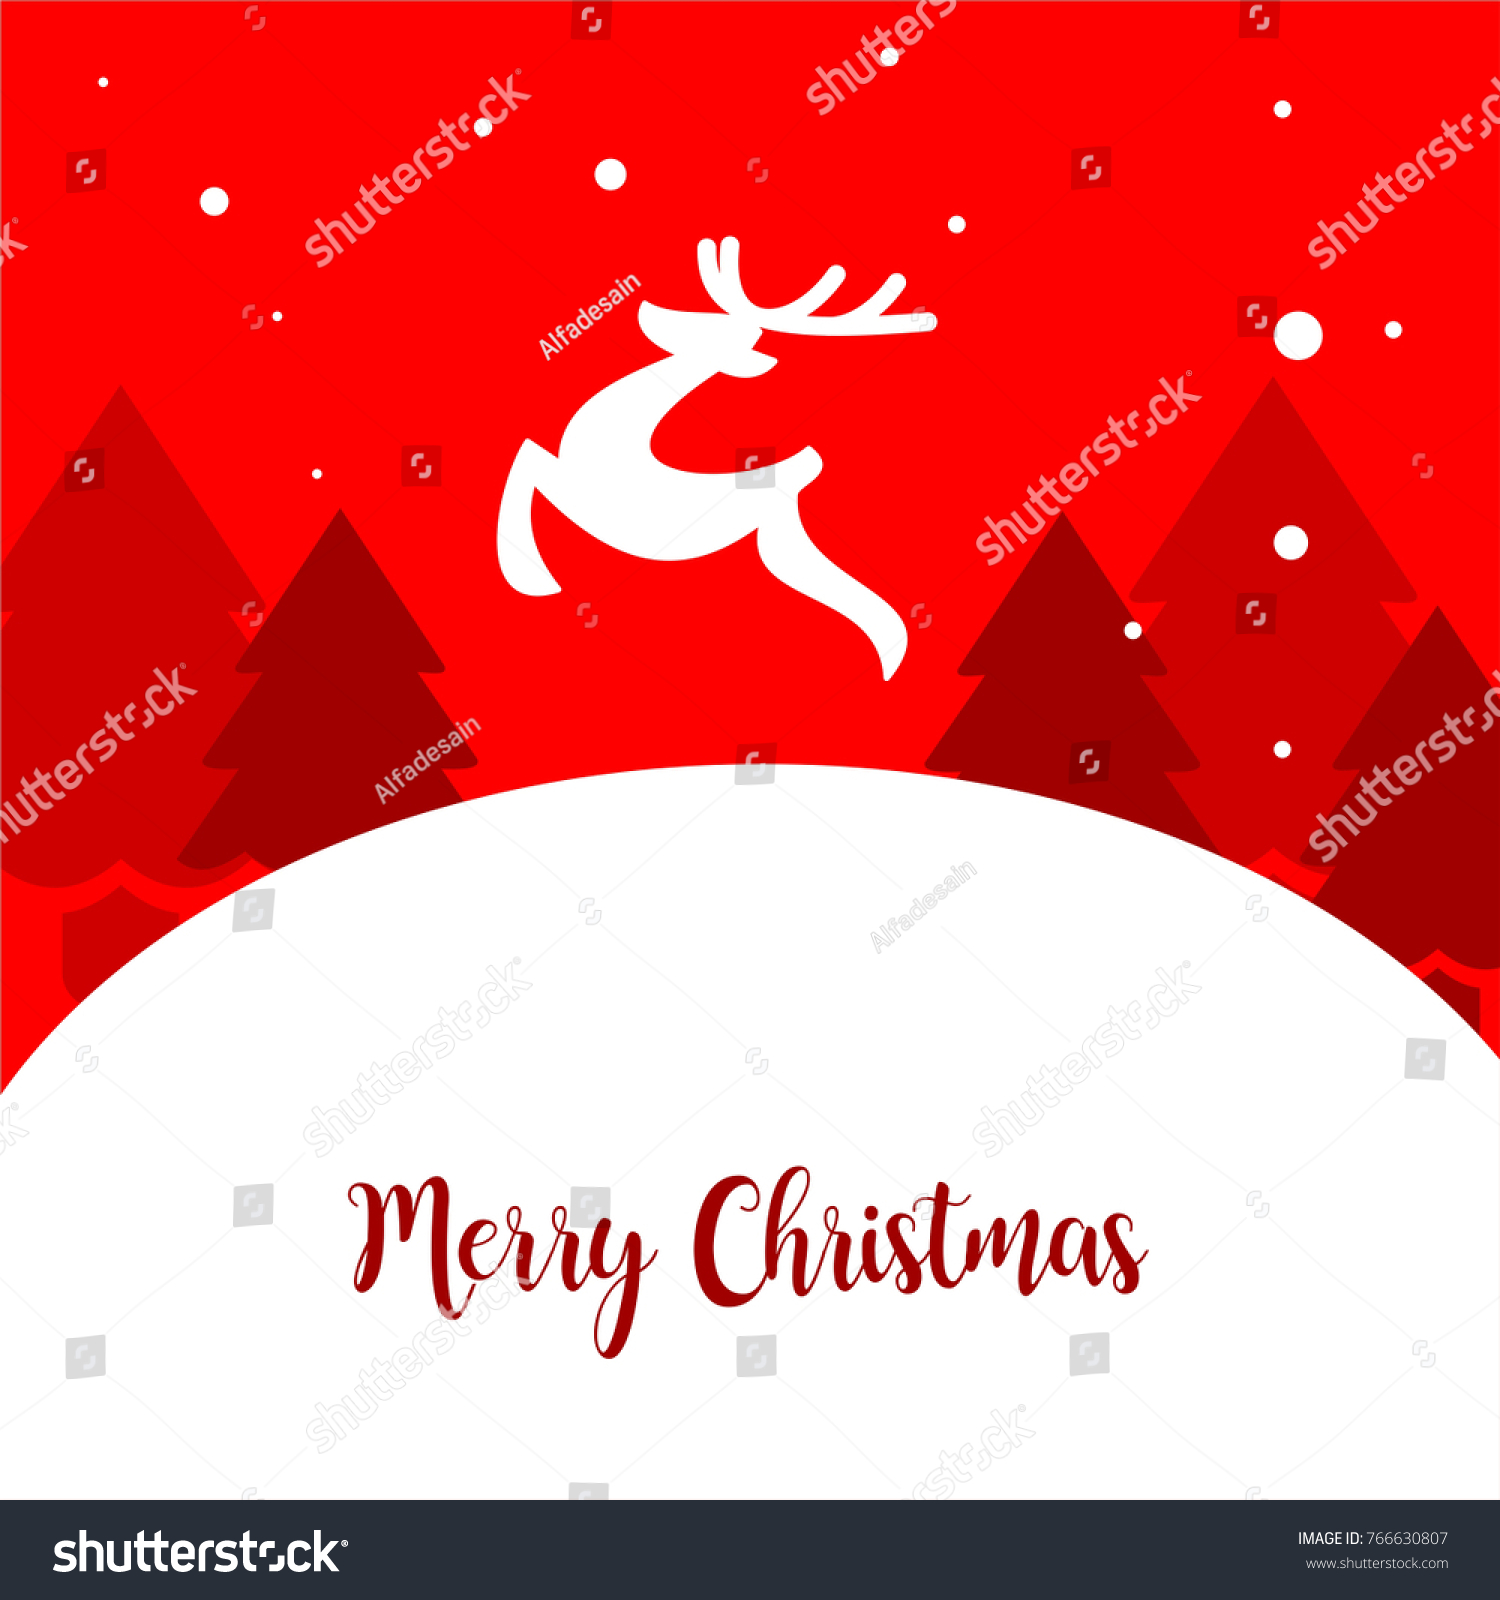 Christmas card designs vector stock vector 766630807 shutterstock christmas card designs vector m4hsunfo